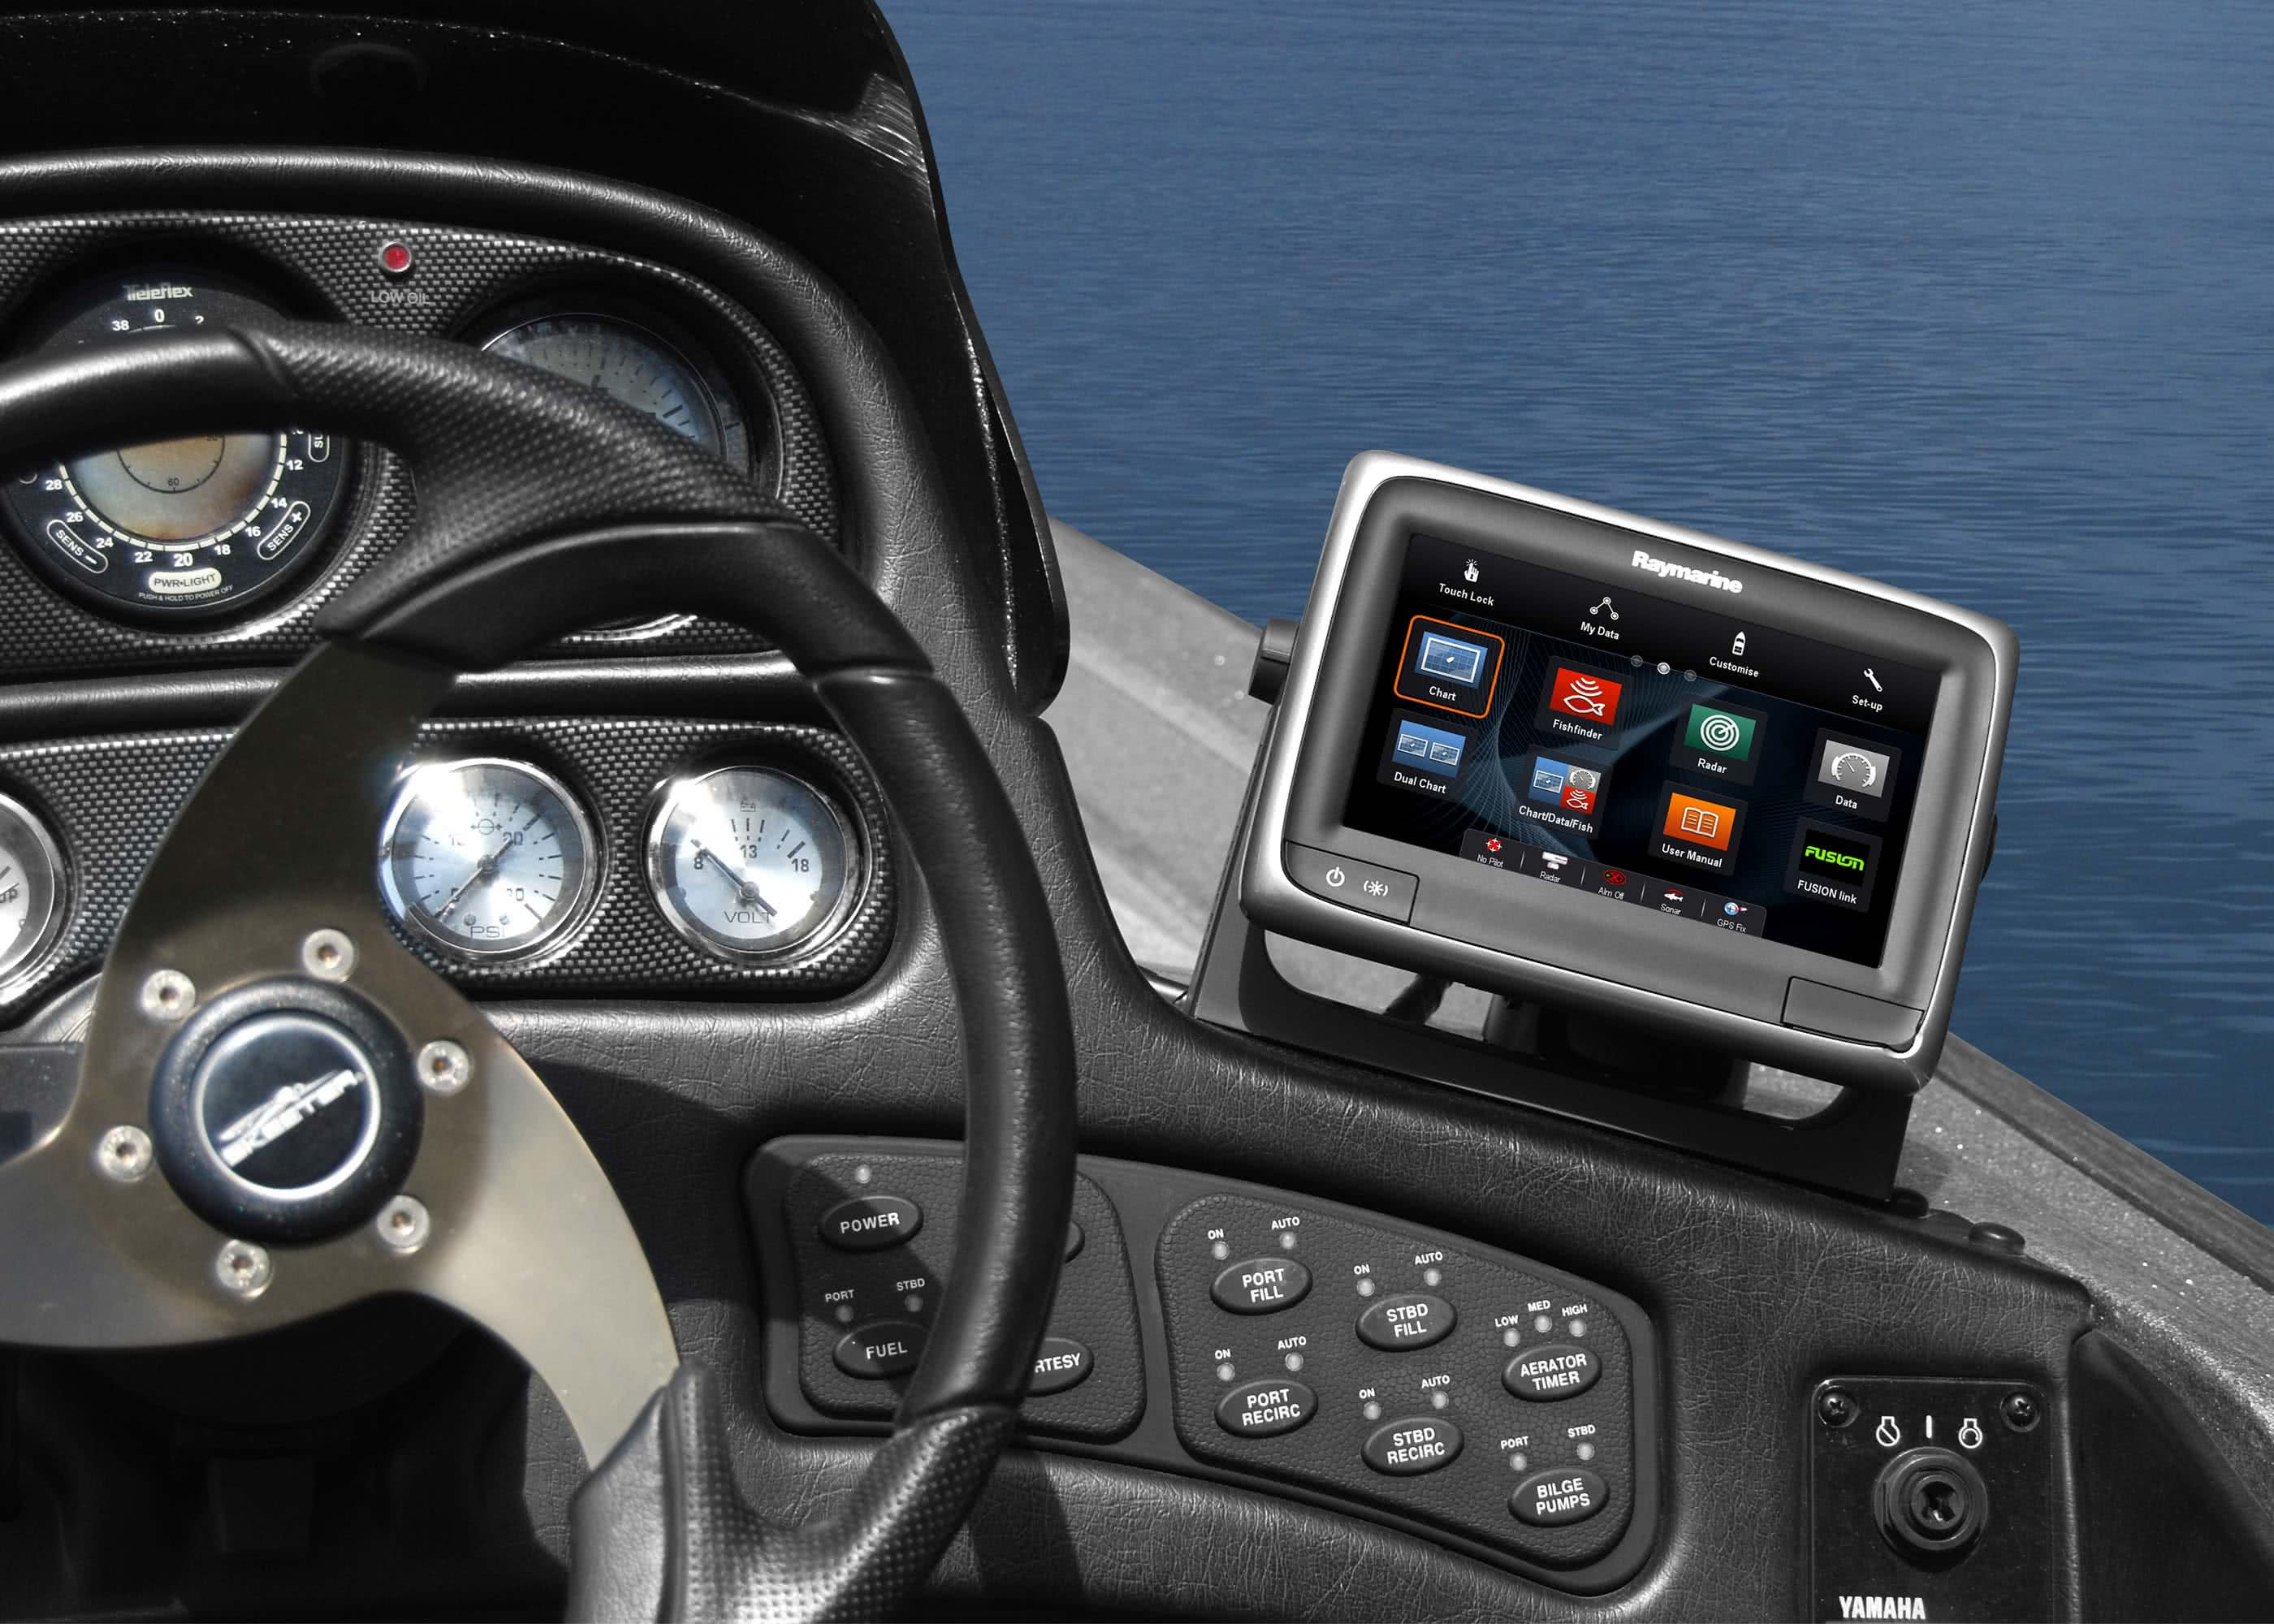 16056_Raymarine_Multifunktionsdisplay_a67_5.jpg